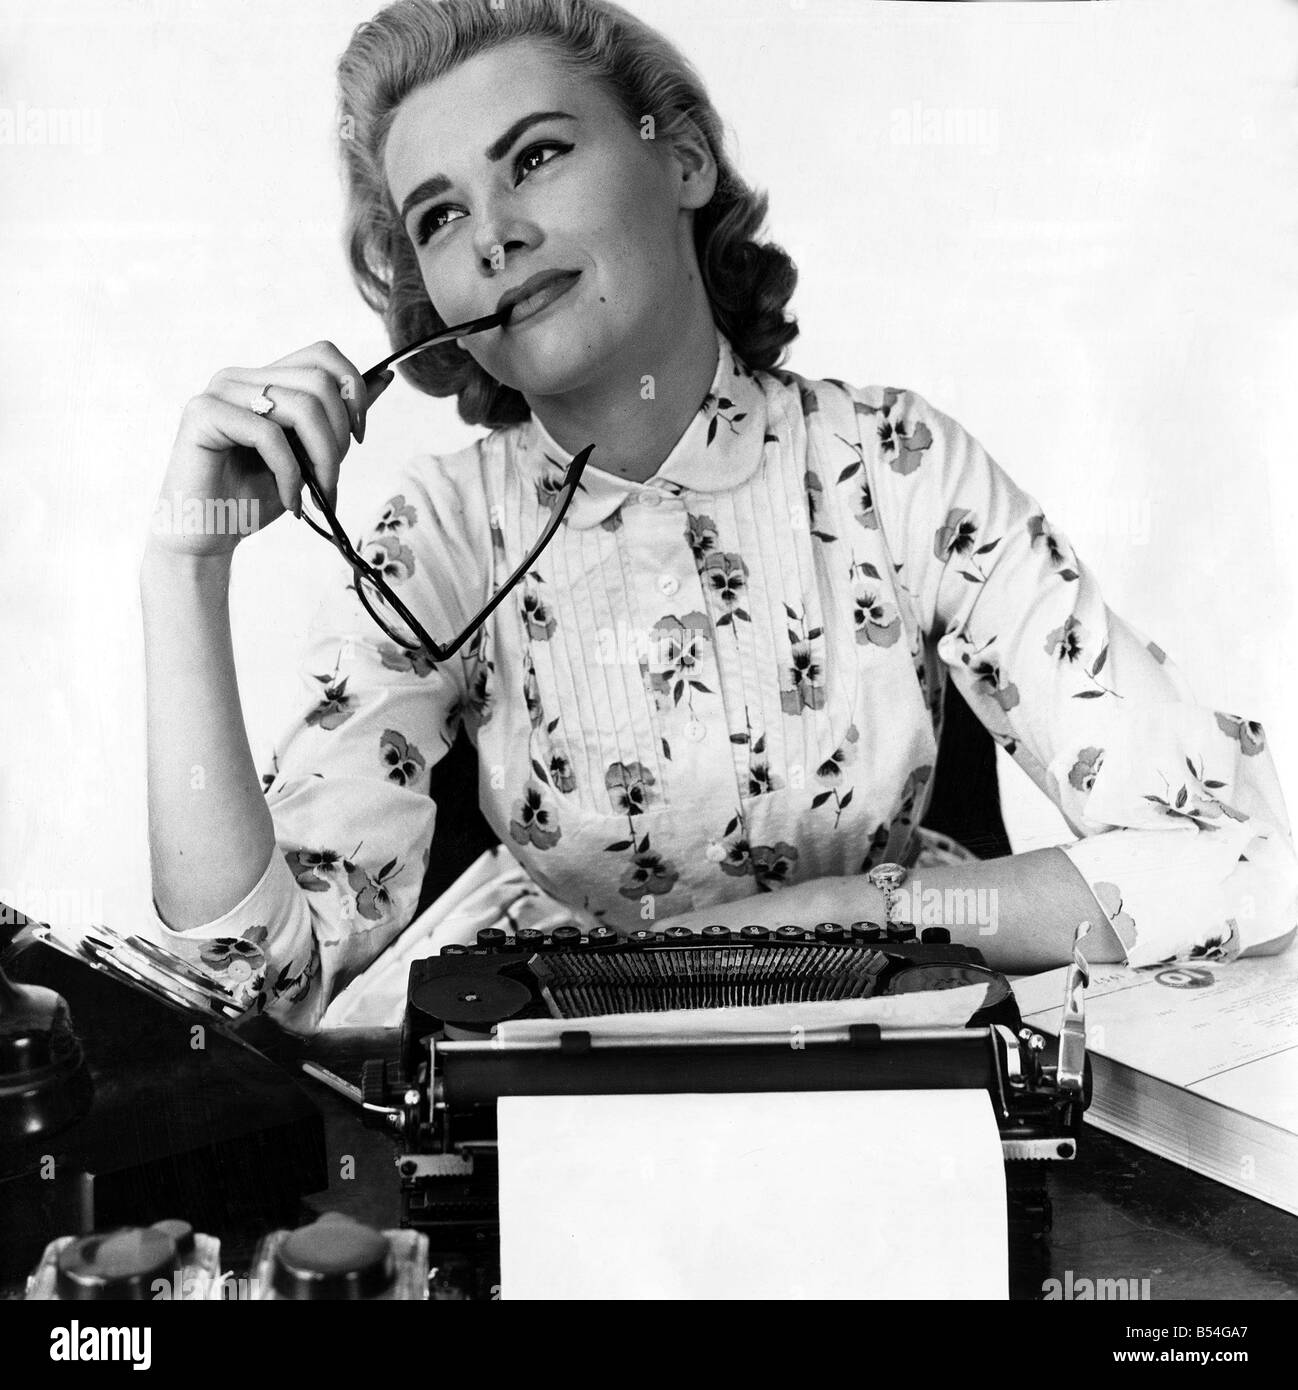 Secretary at typewriter chewing the end of her glasses daydreaming Typist spectacles Office worker W.S.M. Features - Stock Image